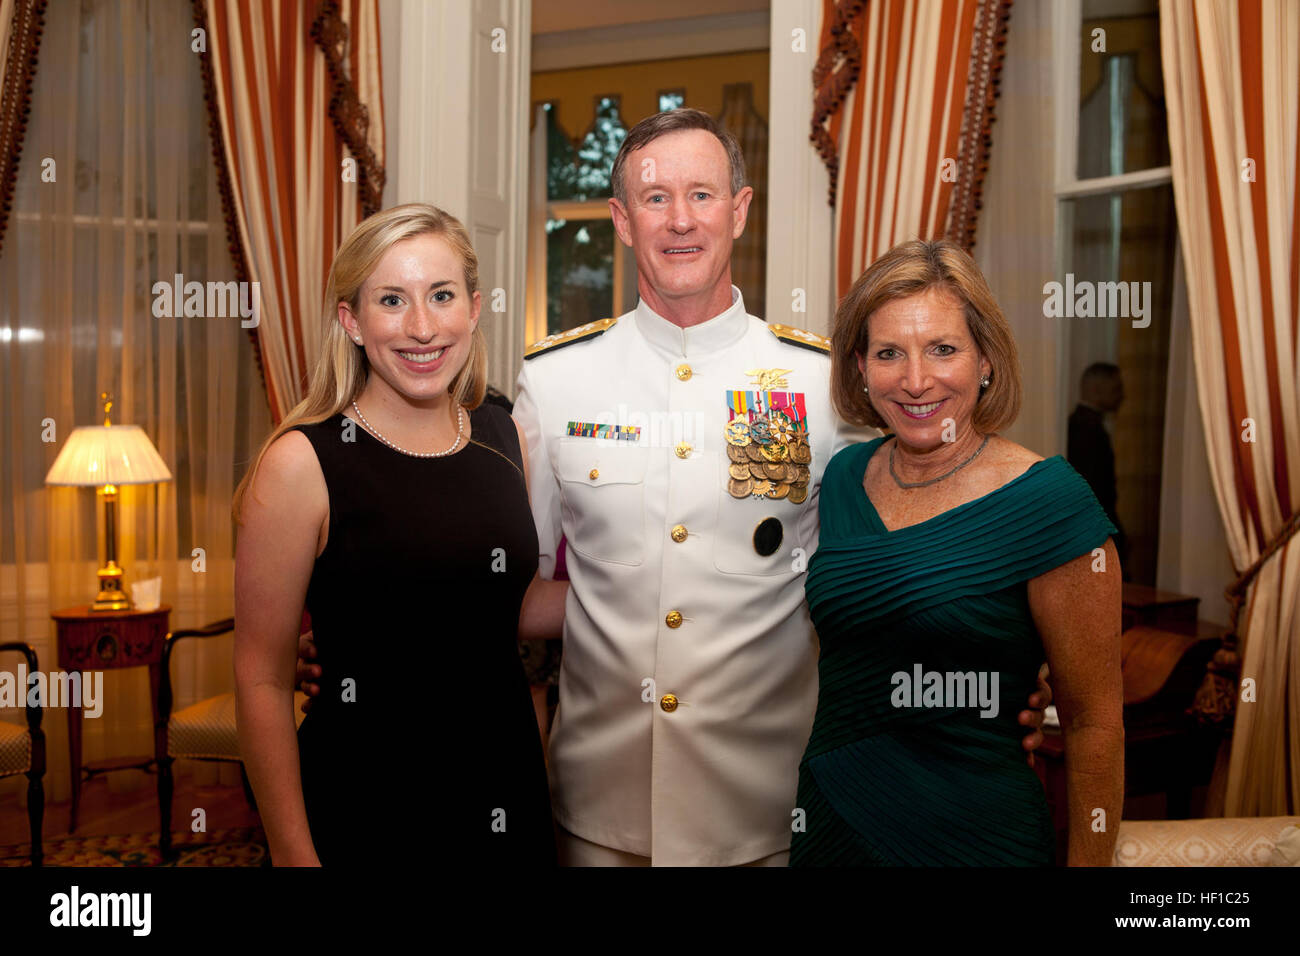 The Evening Parade guest of honor, Navy Adm. William H